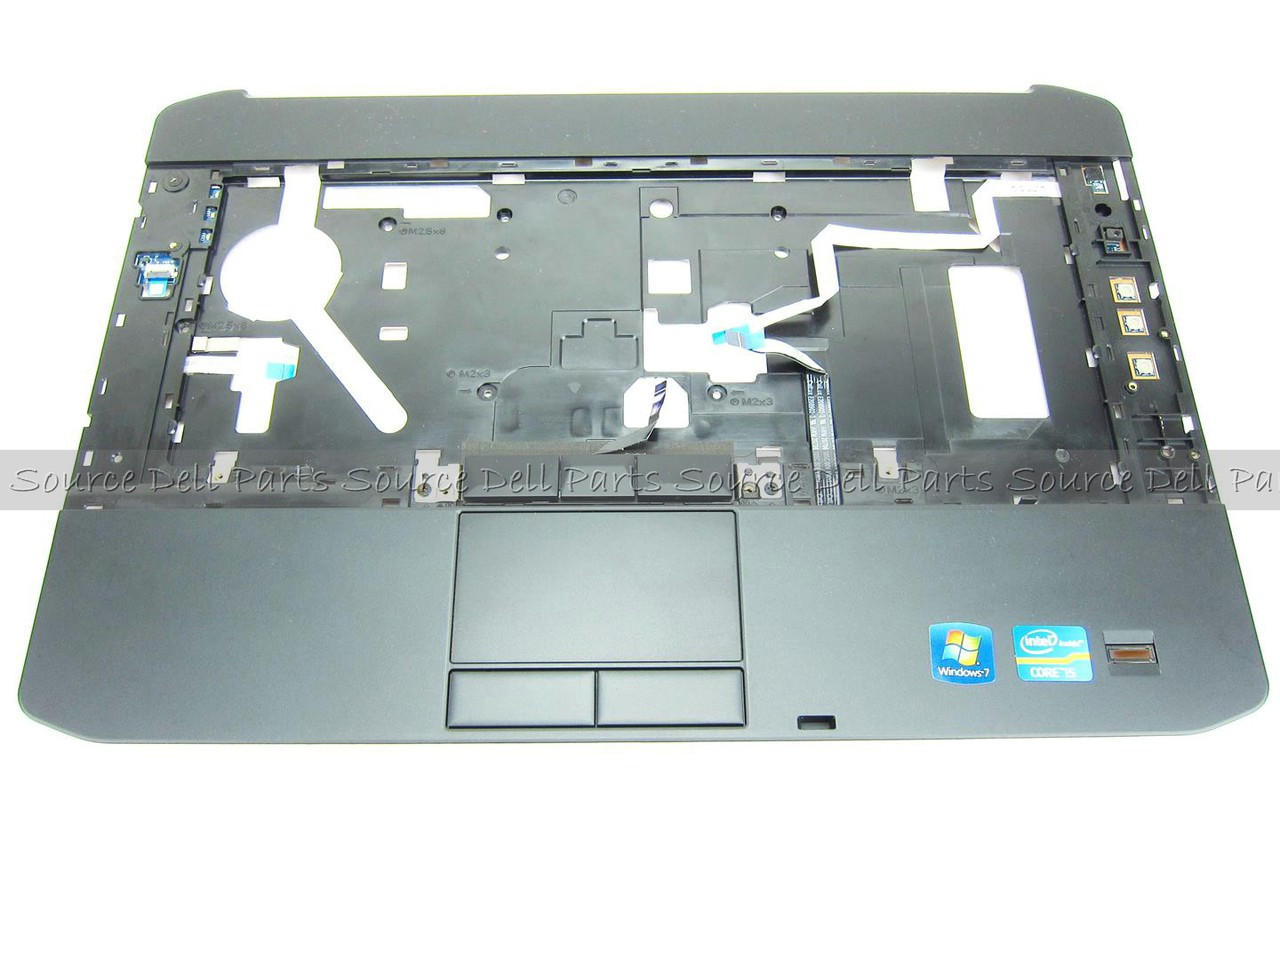 Dell Latitude E5430 Palmrest Touchpad Dual Pointing w/ Fingerprint Reader - H5NF8 (B)